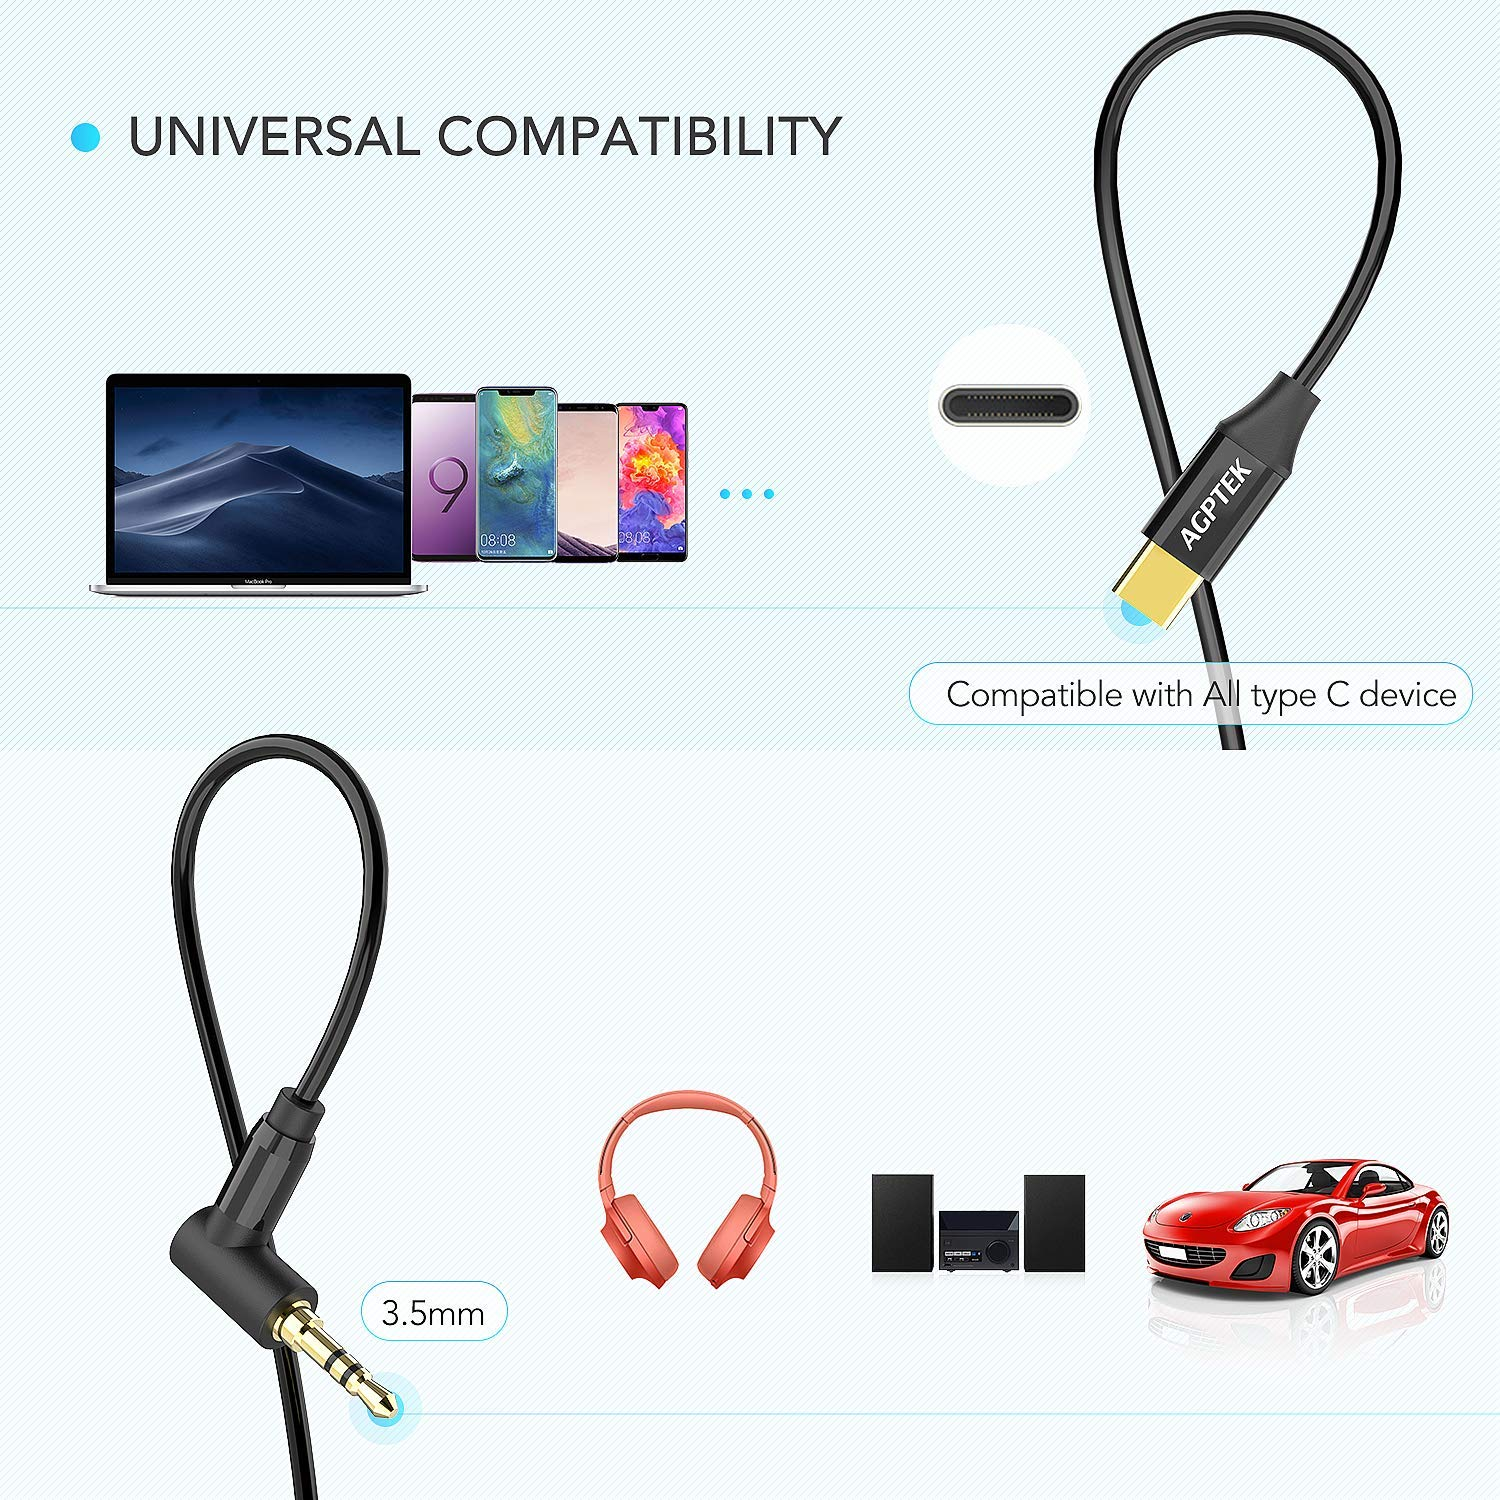 Essential Ph-1,iPad pro and More Xiaomi Huawei AGPTEK Type C to 3.5mm Male Car Aux Adapter Cord for Car//Home Stereo for Google Pixel 3//2//XL Black Moto Z USB C to 3.5mm Audio Cable